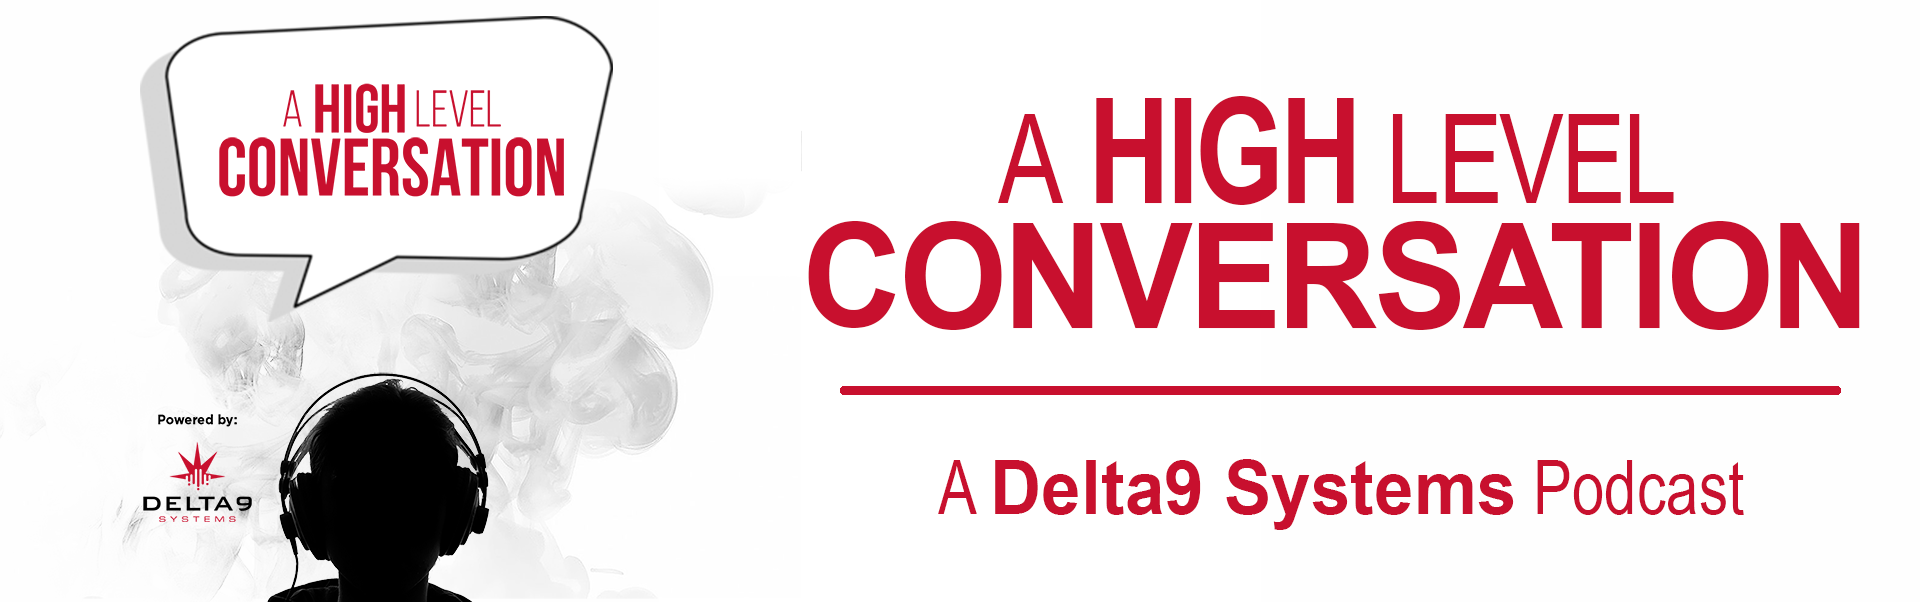 A High Level Conversation - Delta9 Systems Podcast